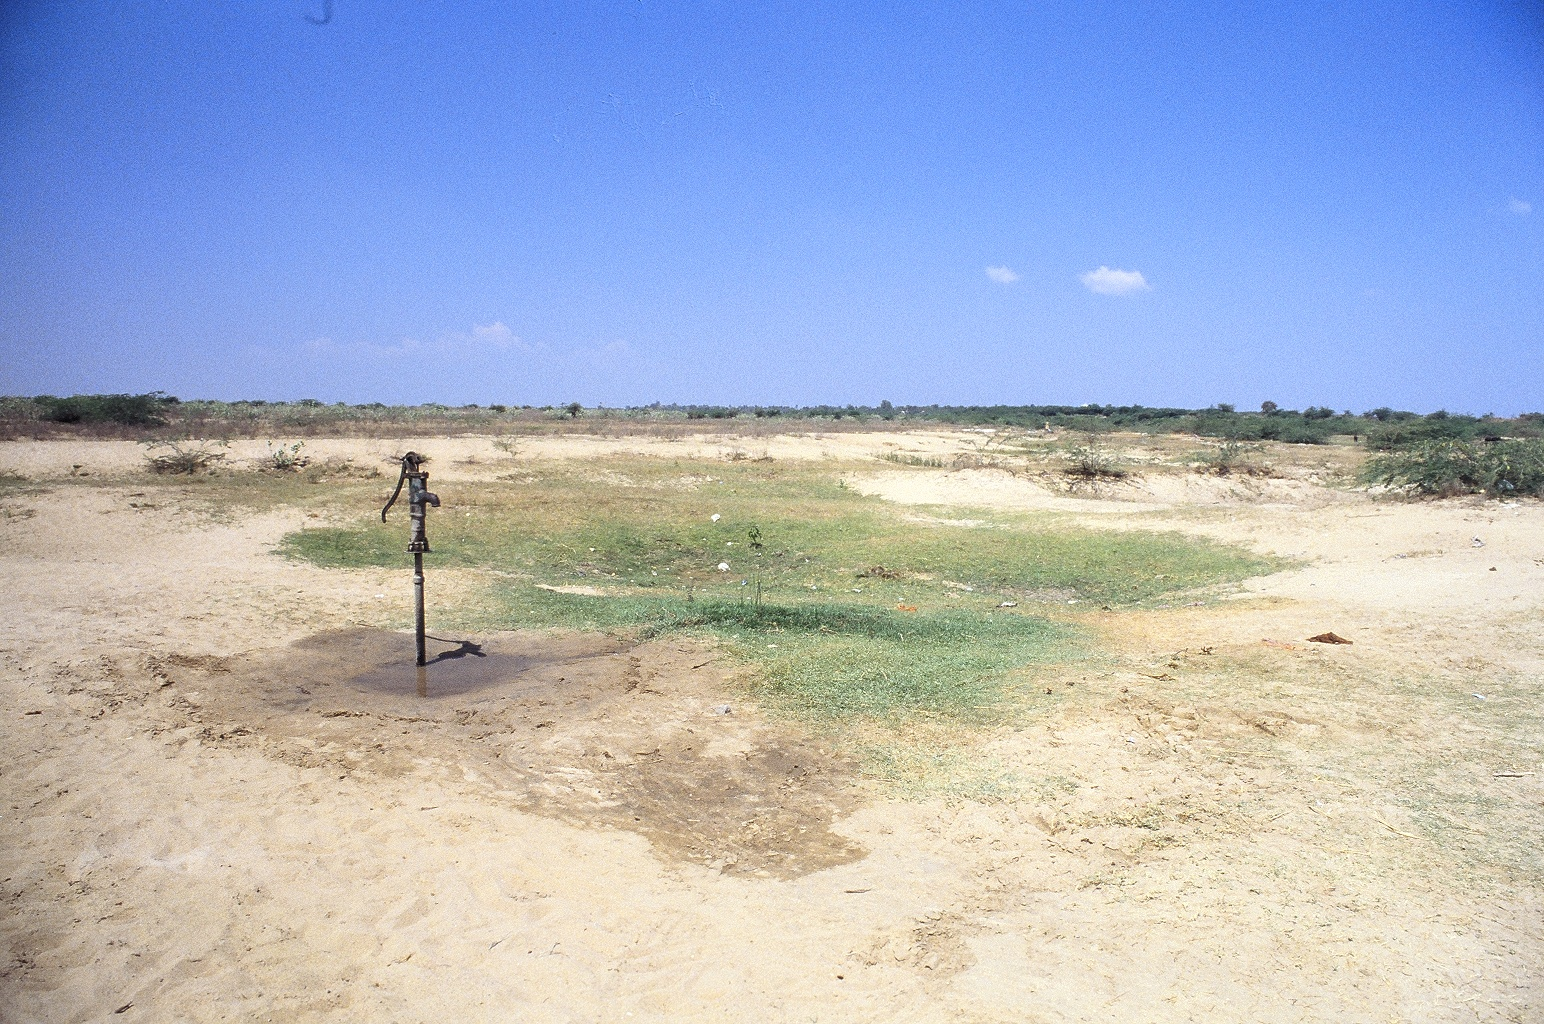 Kothapeta before FRANK Water installed a safe water project.